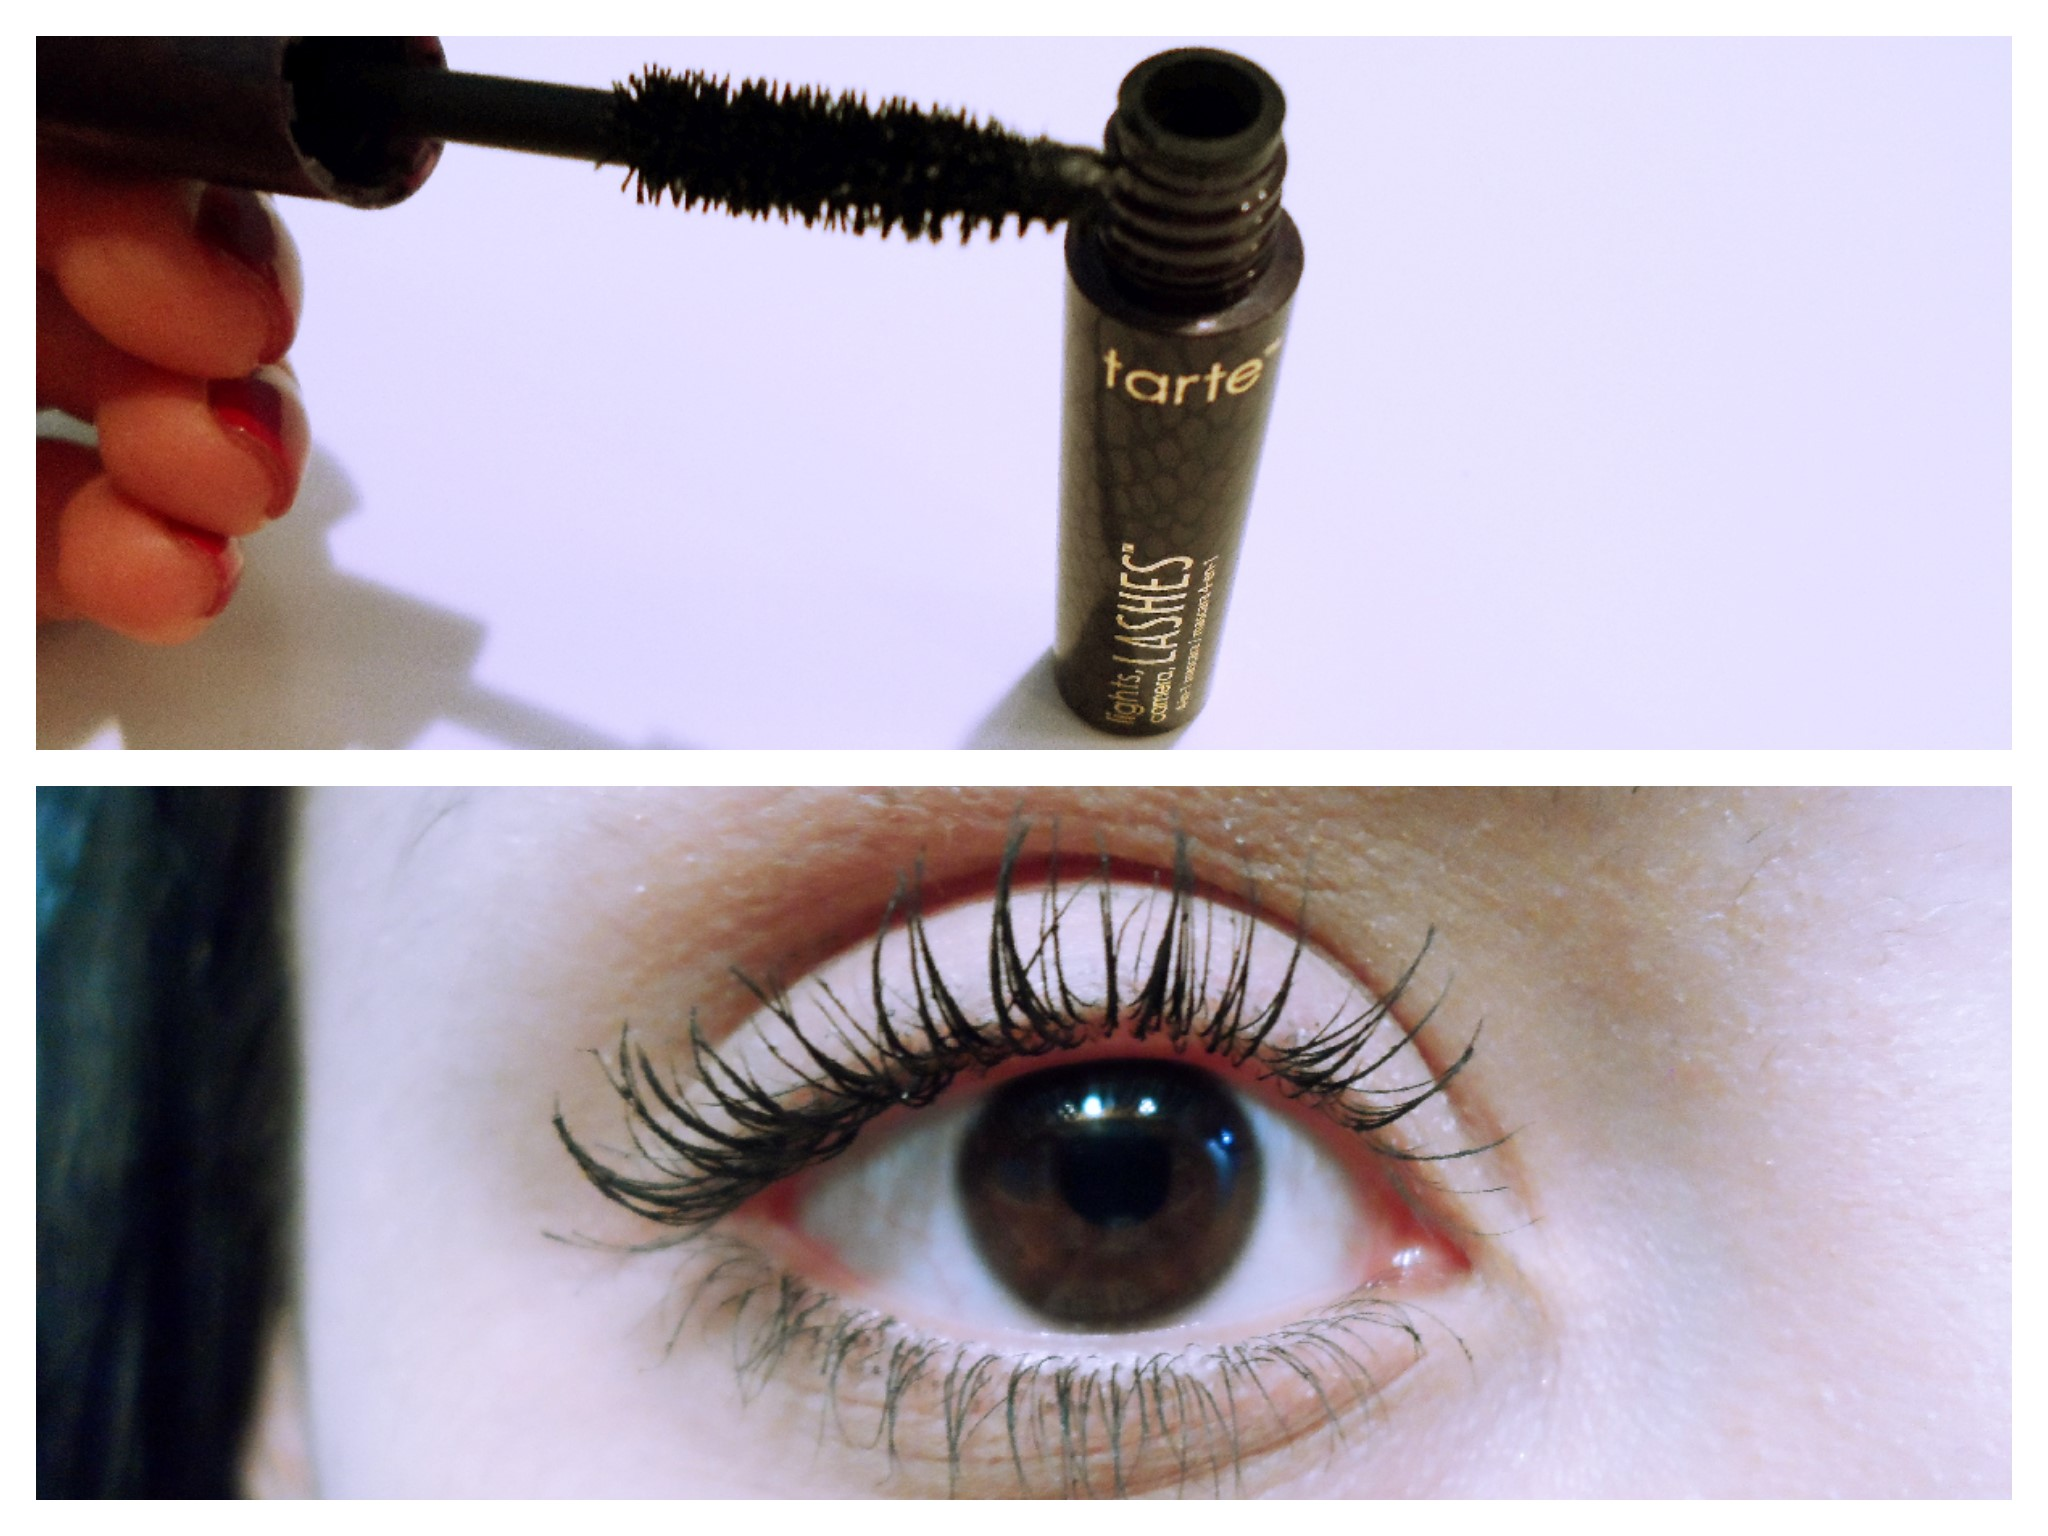 Lights, Camera, Lashes 4-in-1 mascara by Tarte #19